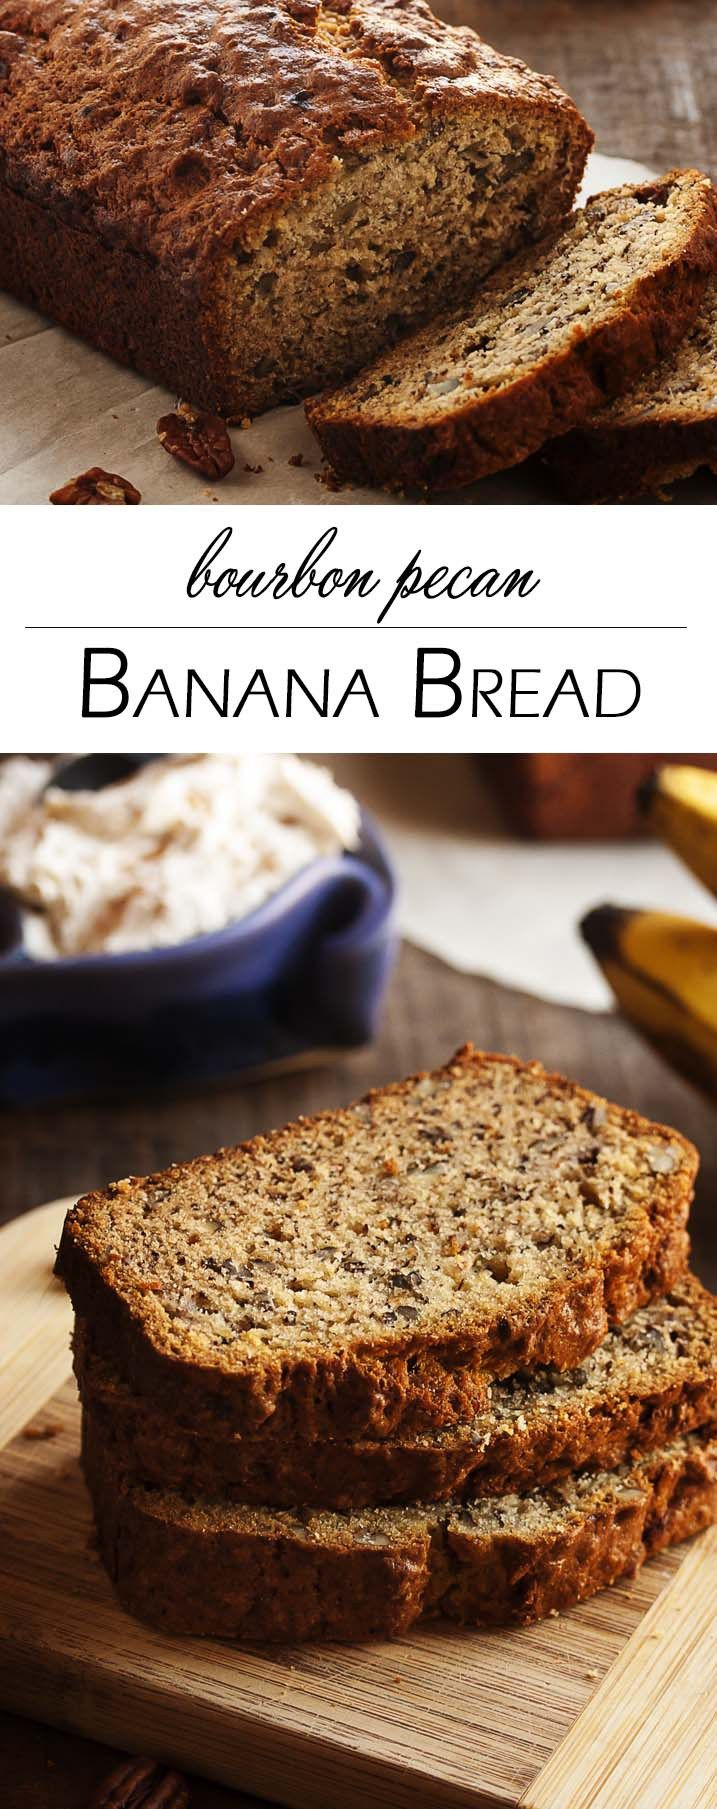 Bourbon, Banana bread and Pecans on Pinterest